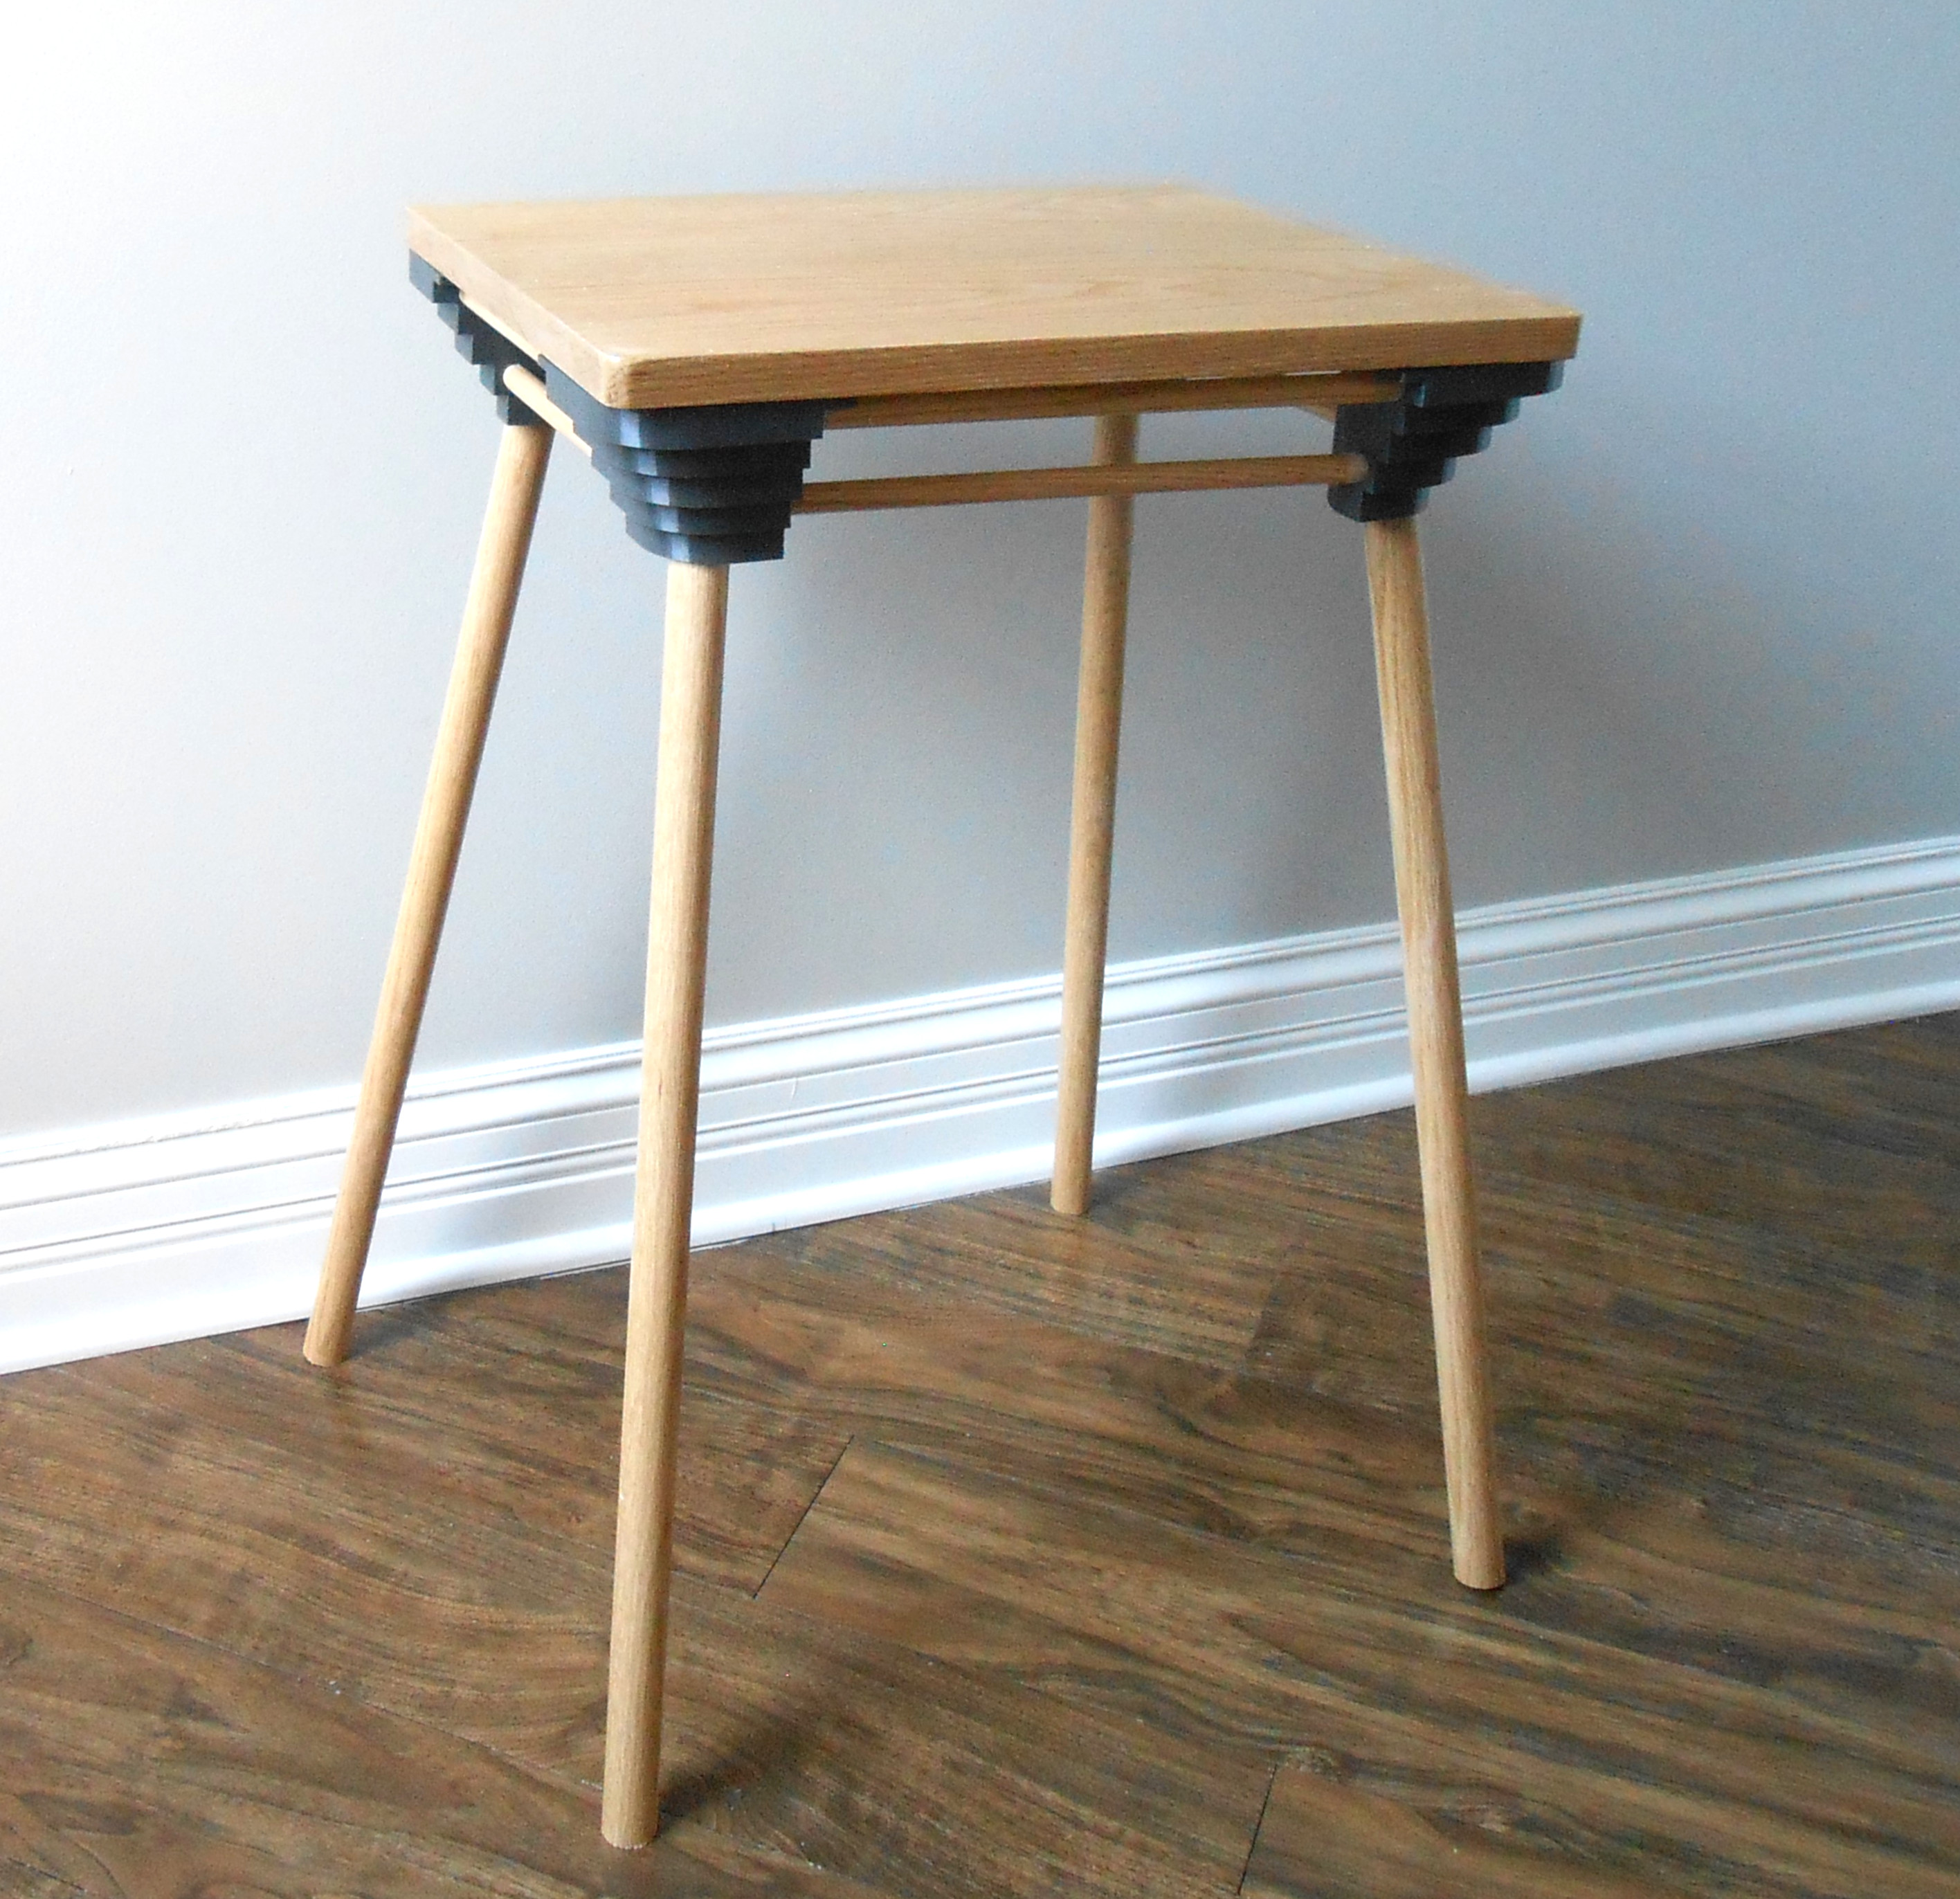 Riepir table. Eco-friendly, sustainable, table sealed with non-toxic, zero VOC varnish.